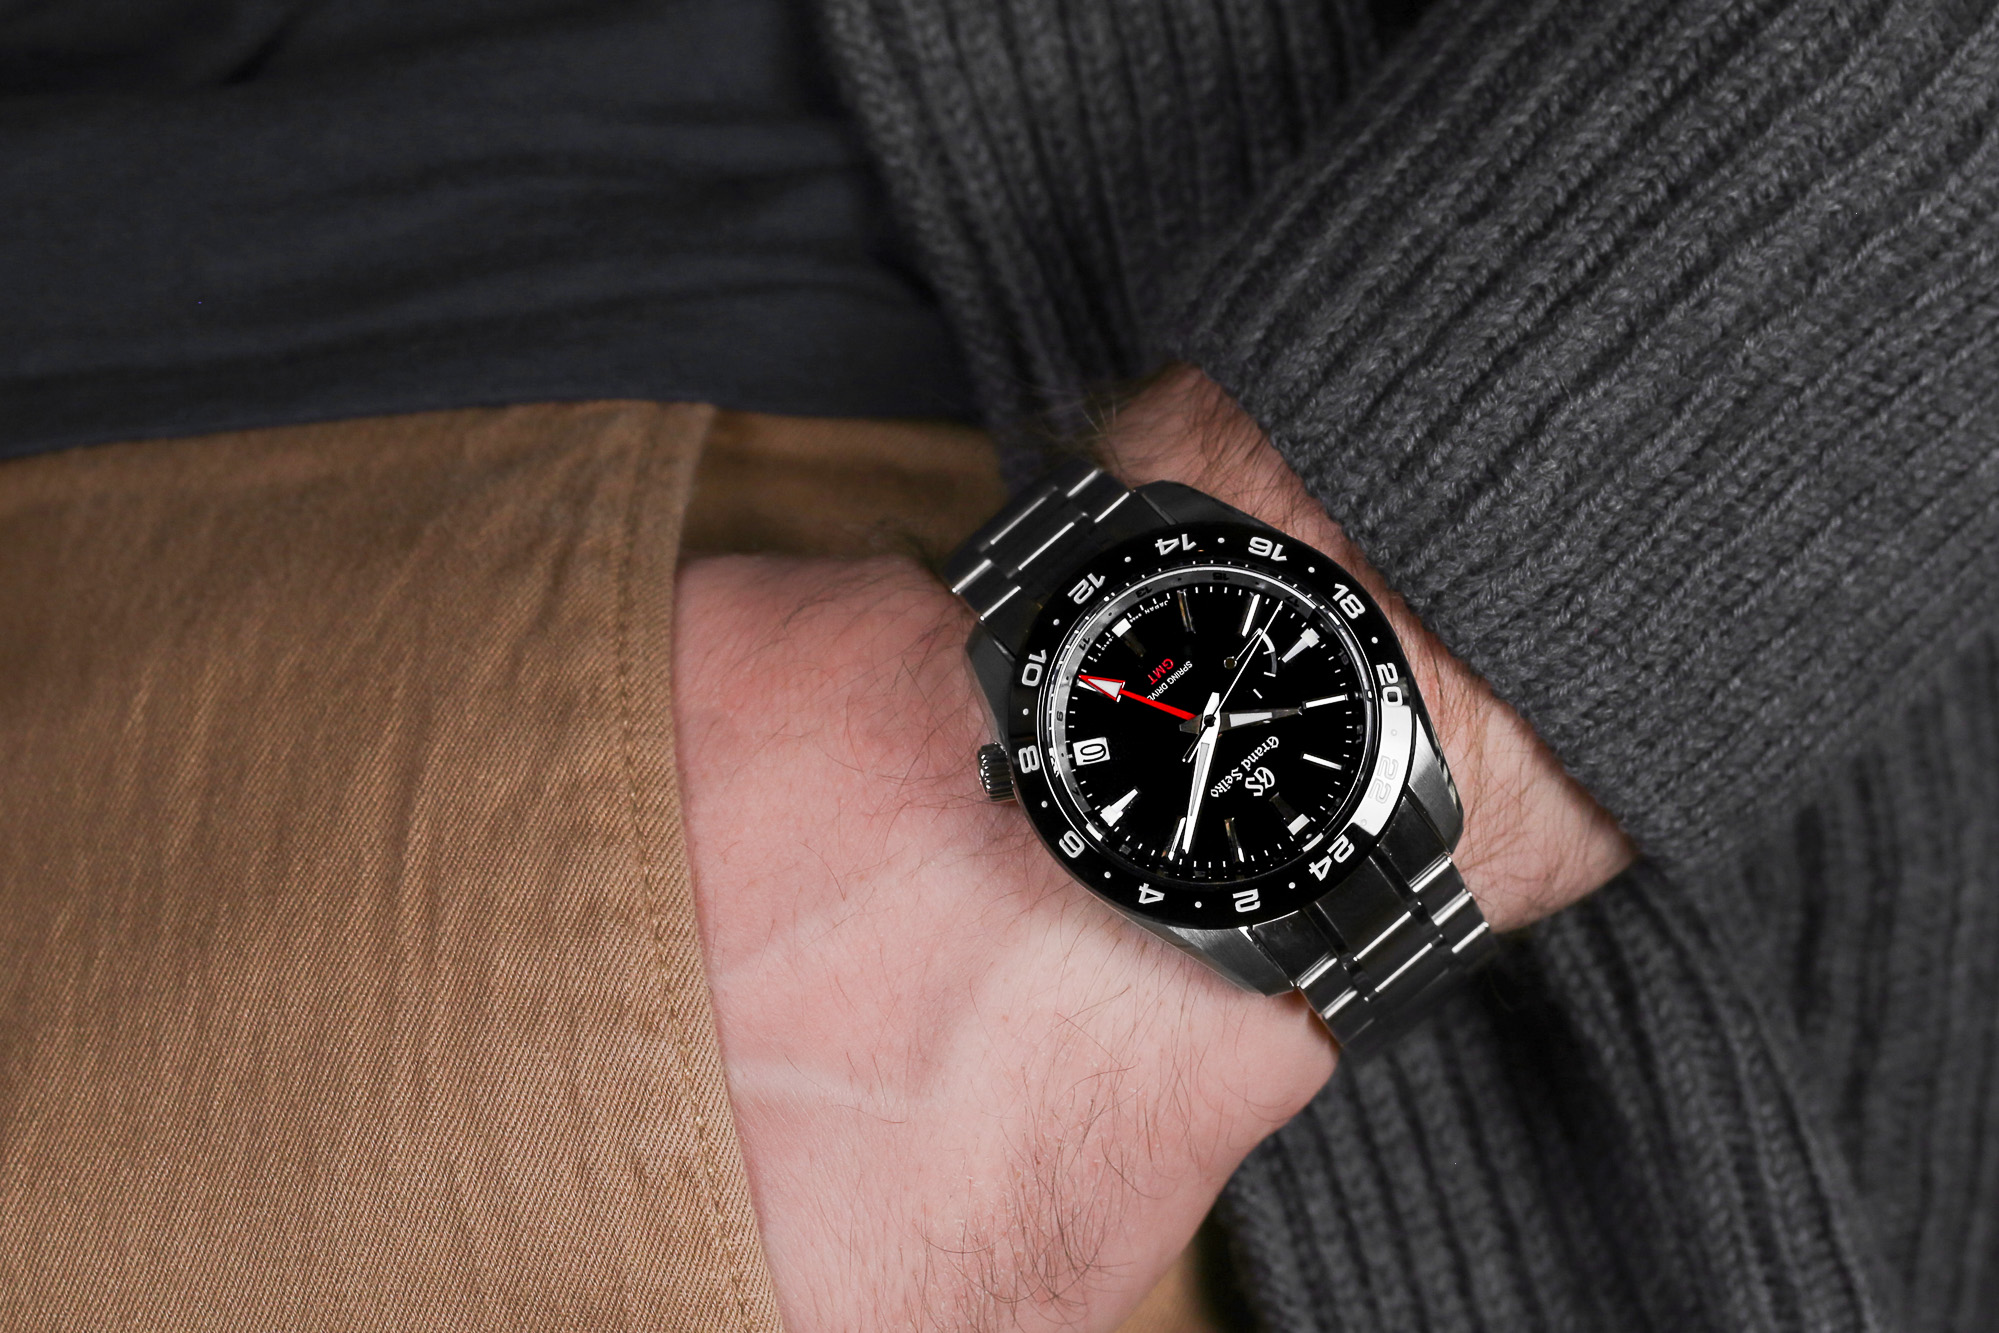 Grand Seiko SBGE253 black dial watch with red accents on the wrist.